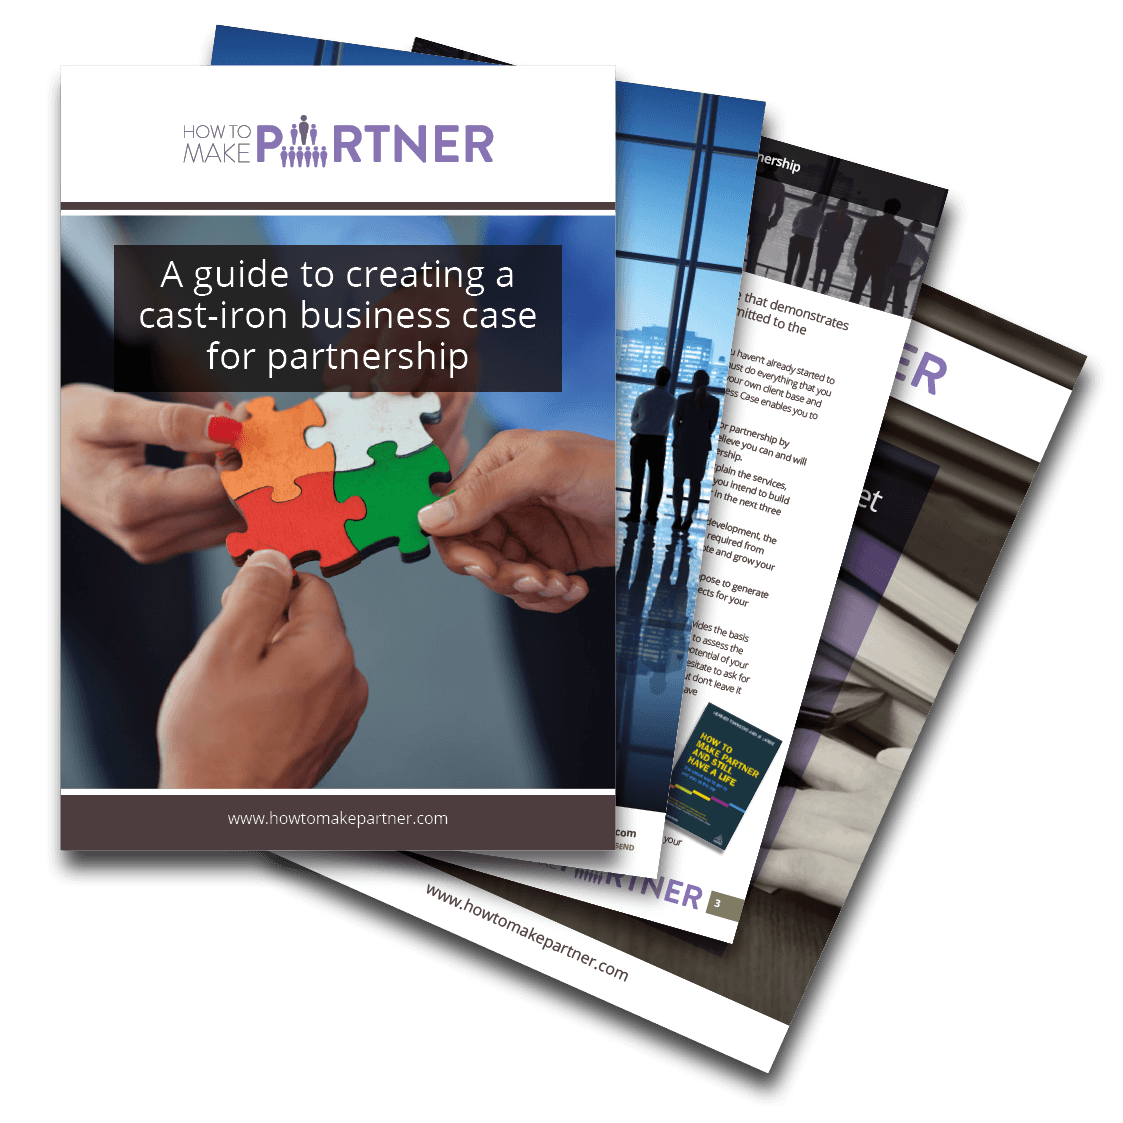 Guide to creating a cast-iron business case for partnership